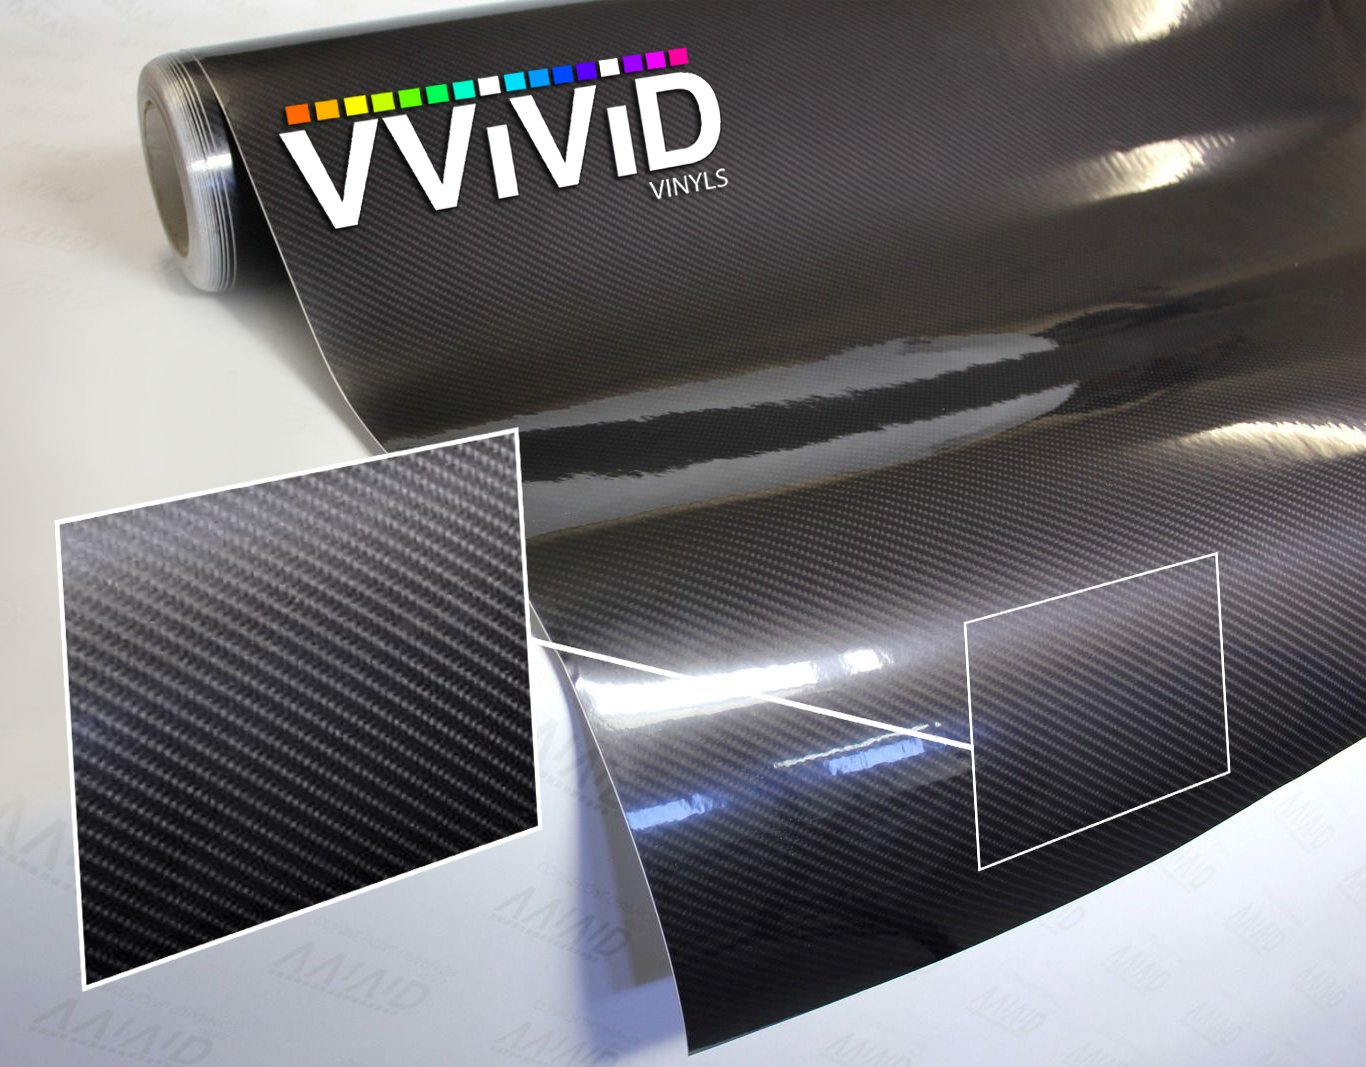 VViViD High Gloss Black Carbon Fiber Tech Art 3-Layer 3D Realistic True Carbon Fiber Look Cast Vinyl Wrap (25ft x 5ft)